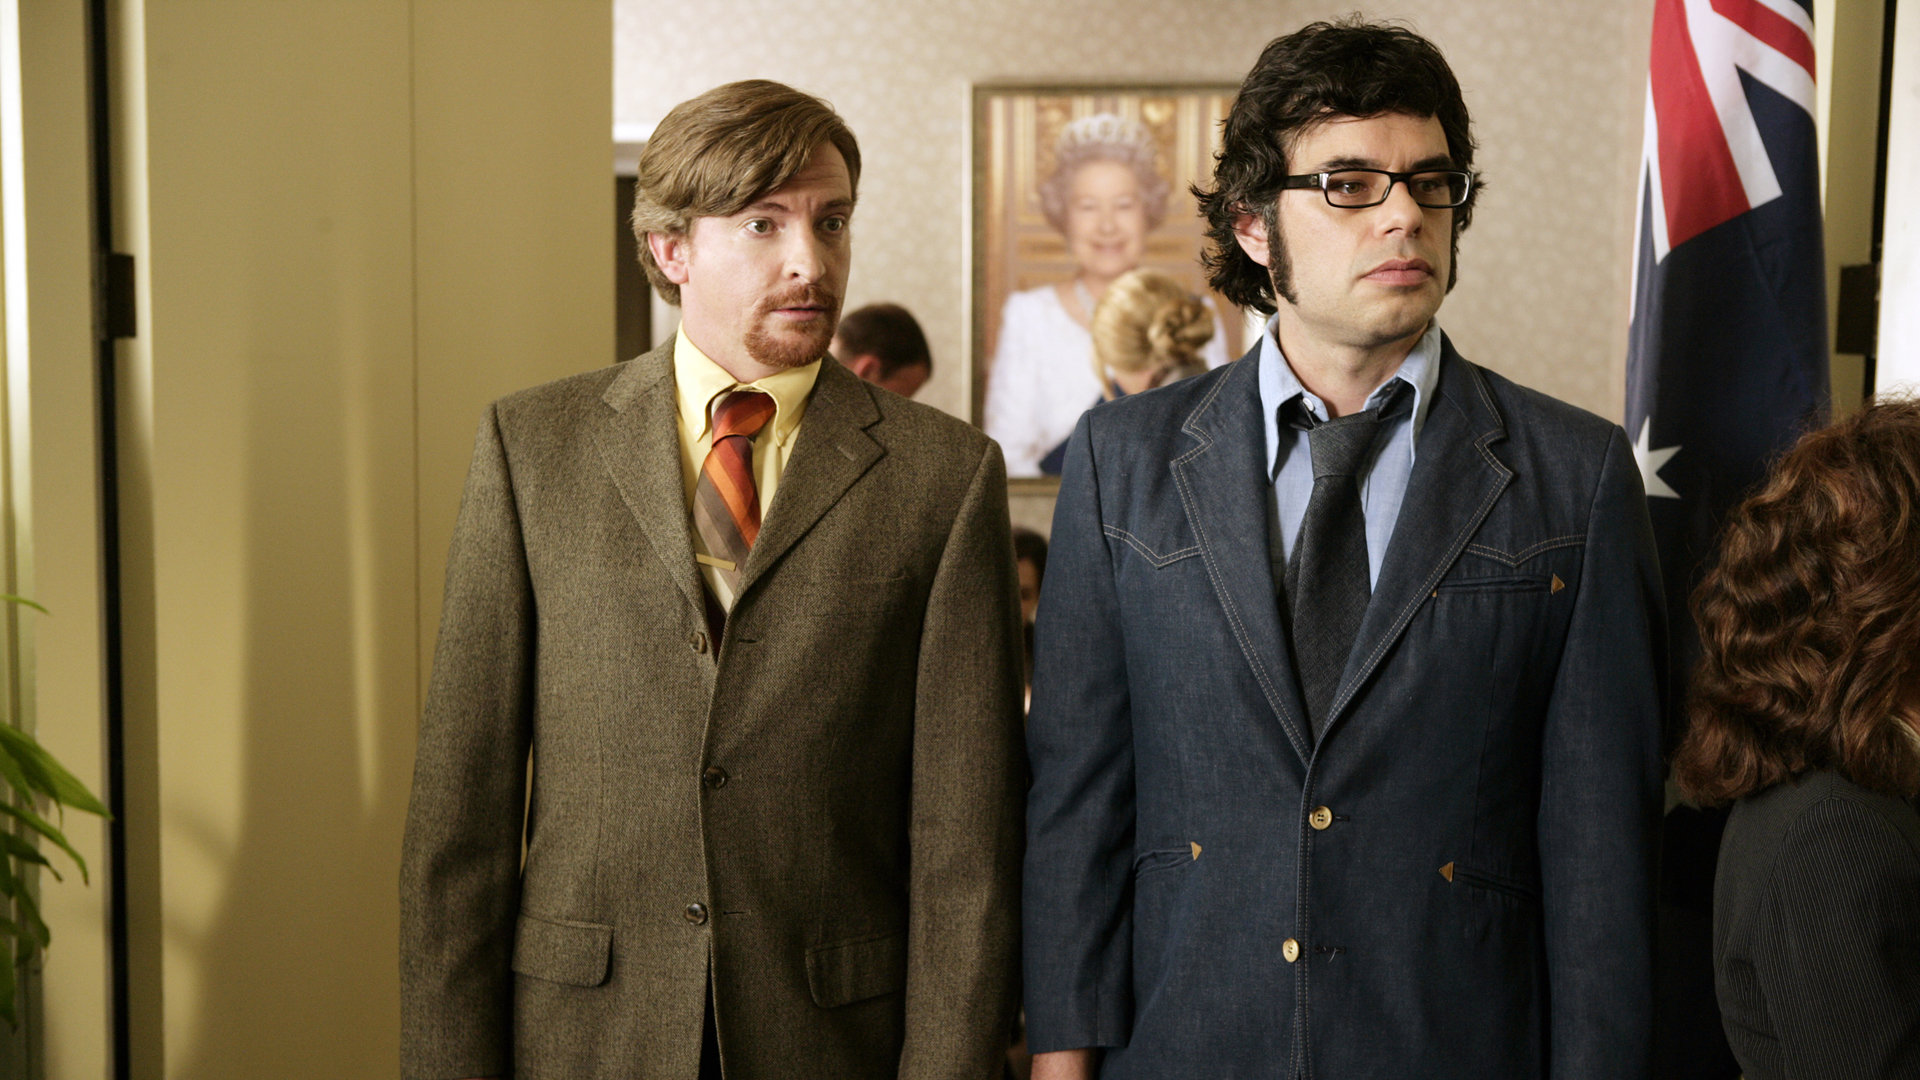 Flight of the Conchords serial